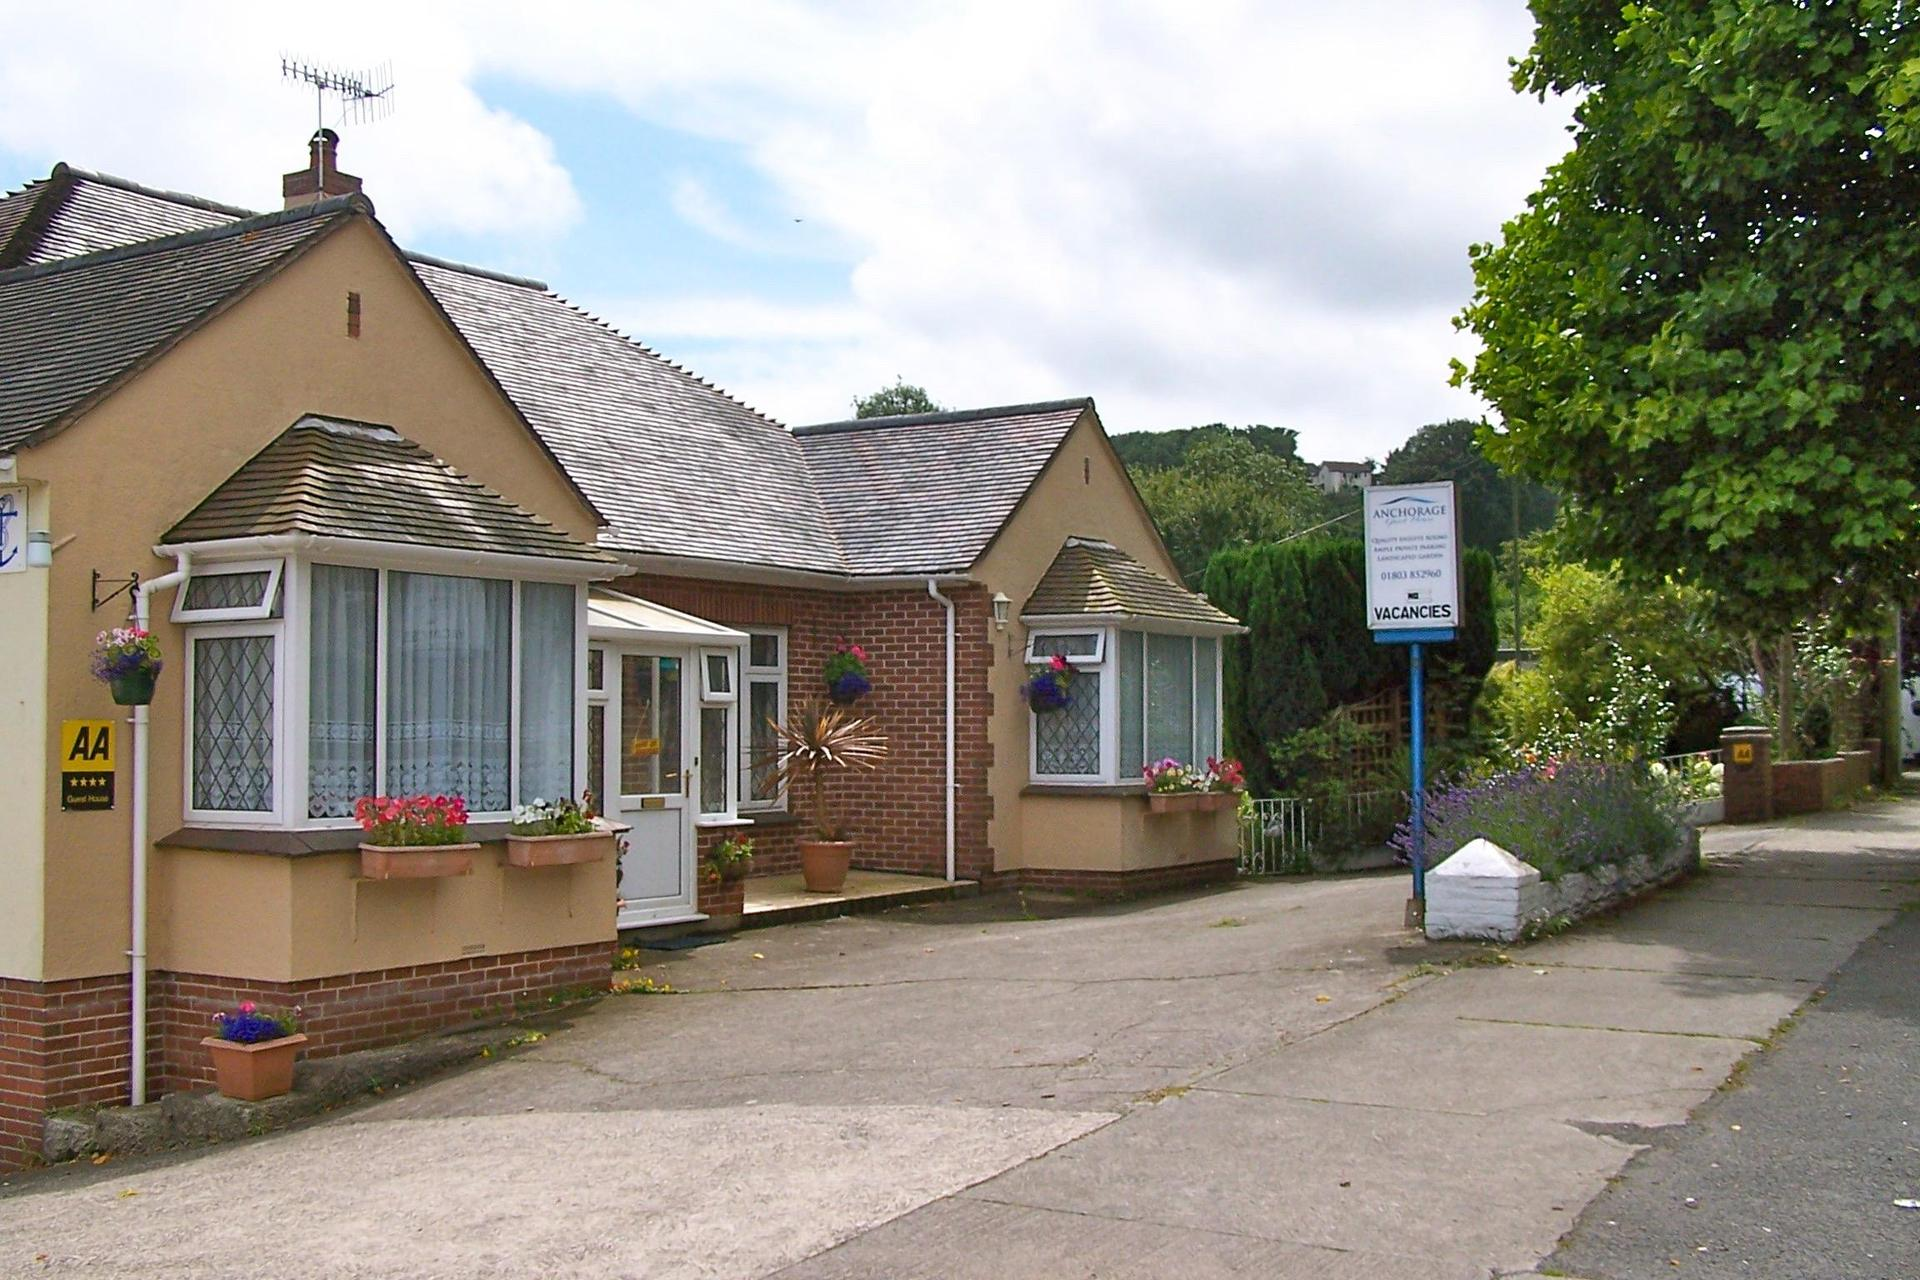 Anchorage Guest House in Torquay